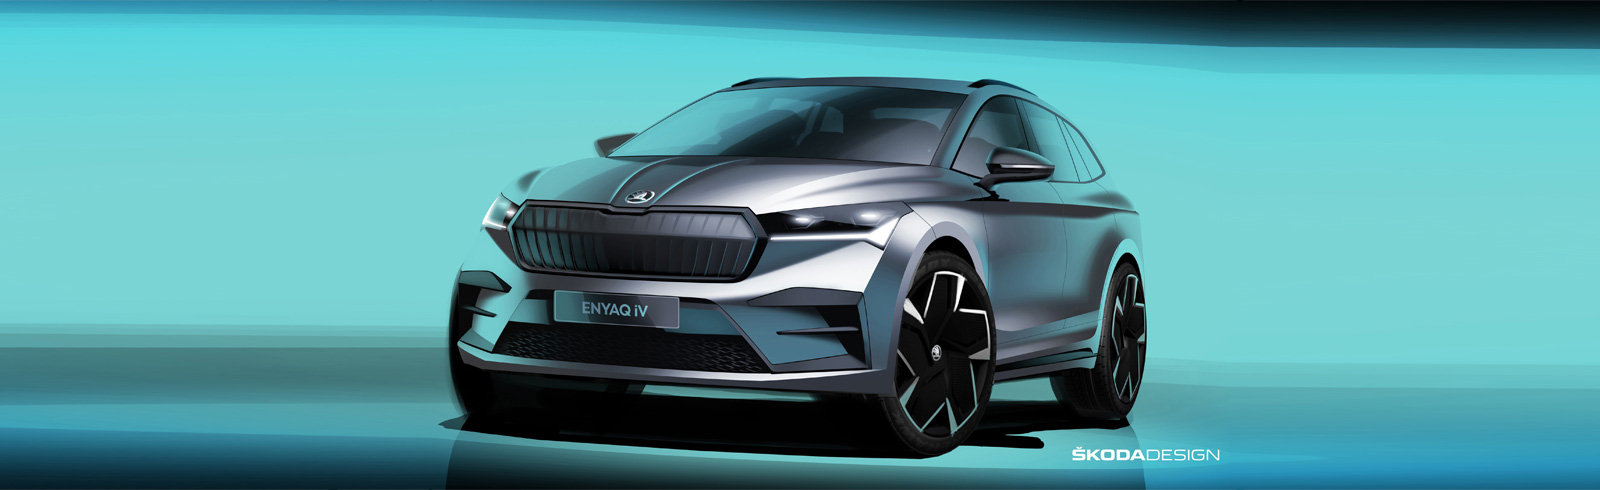 Škoda elaborates on the ENYAQ iV exterior design, will offer a 0.27 drag coefficient